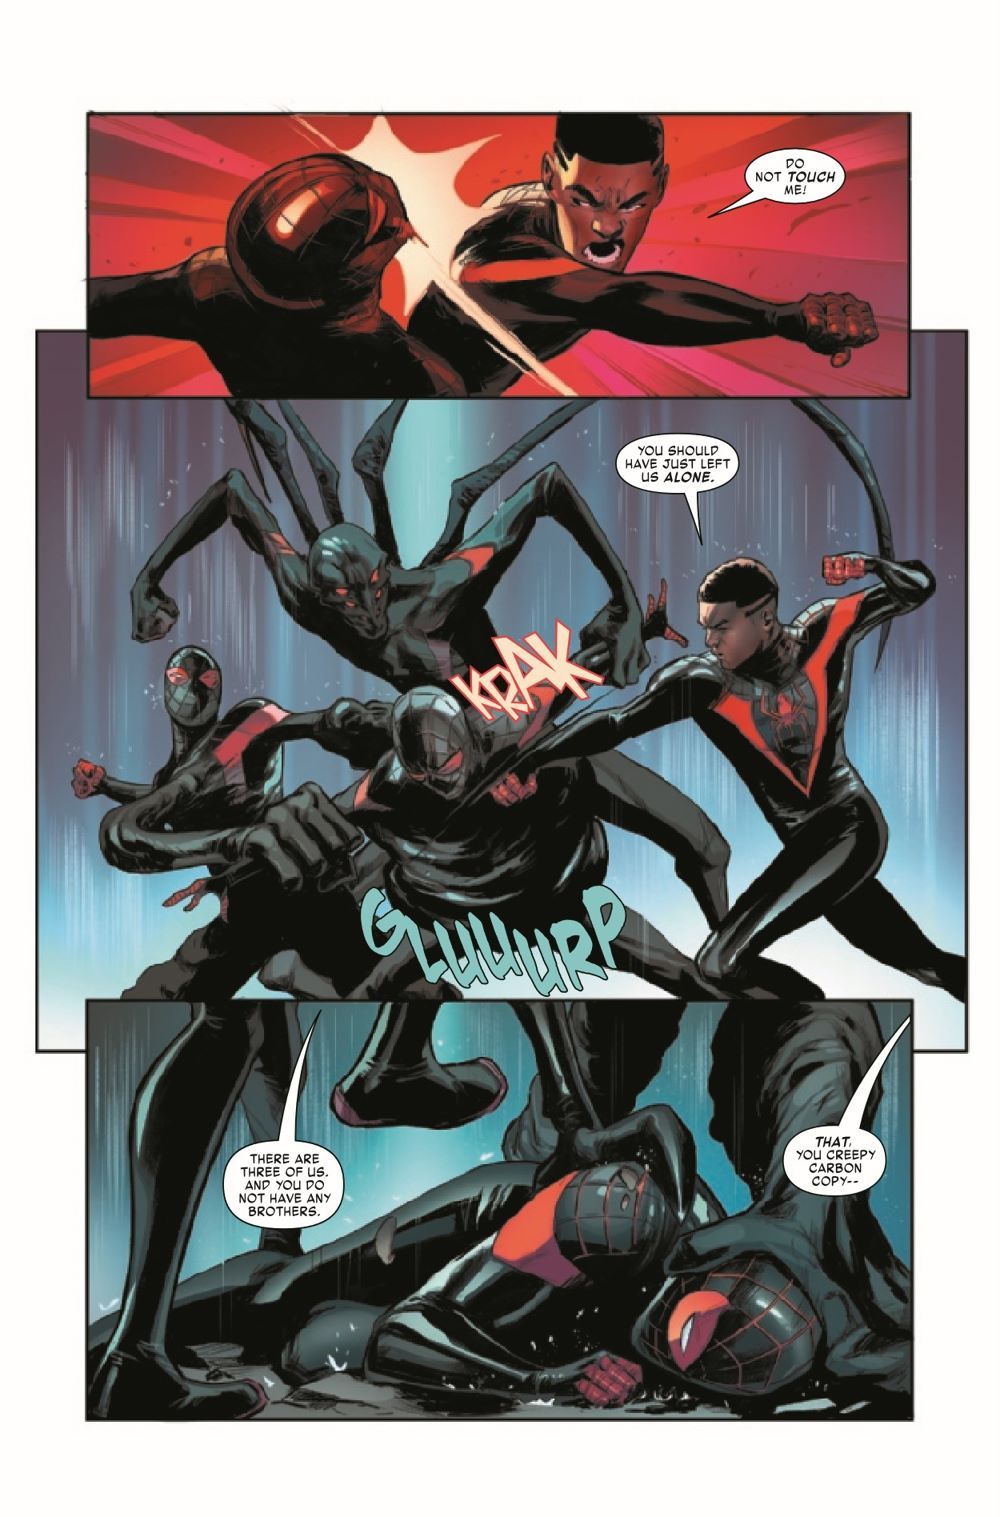 MMSM2018026_Preview-5 ComicList Previews: MILES MORALES SPIDER-MAN #26